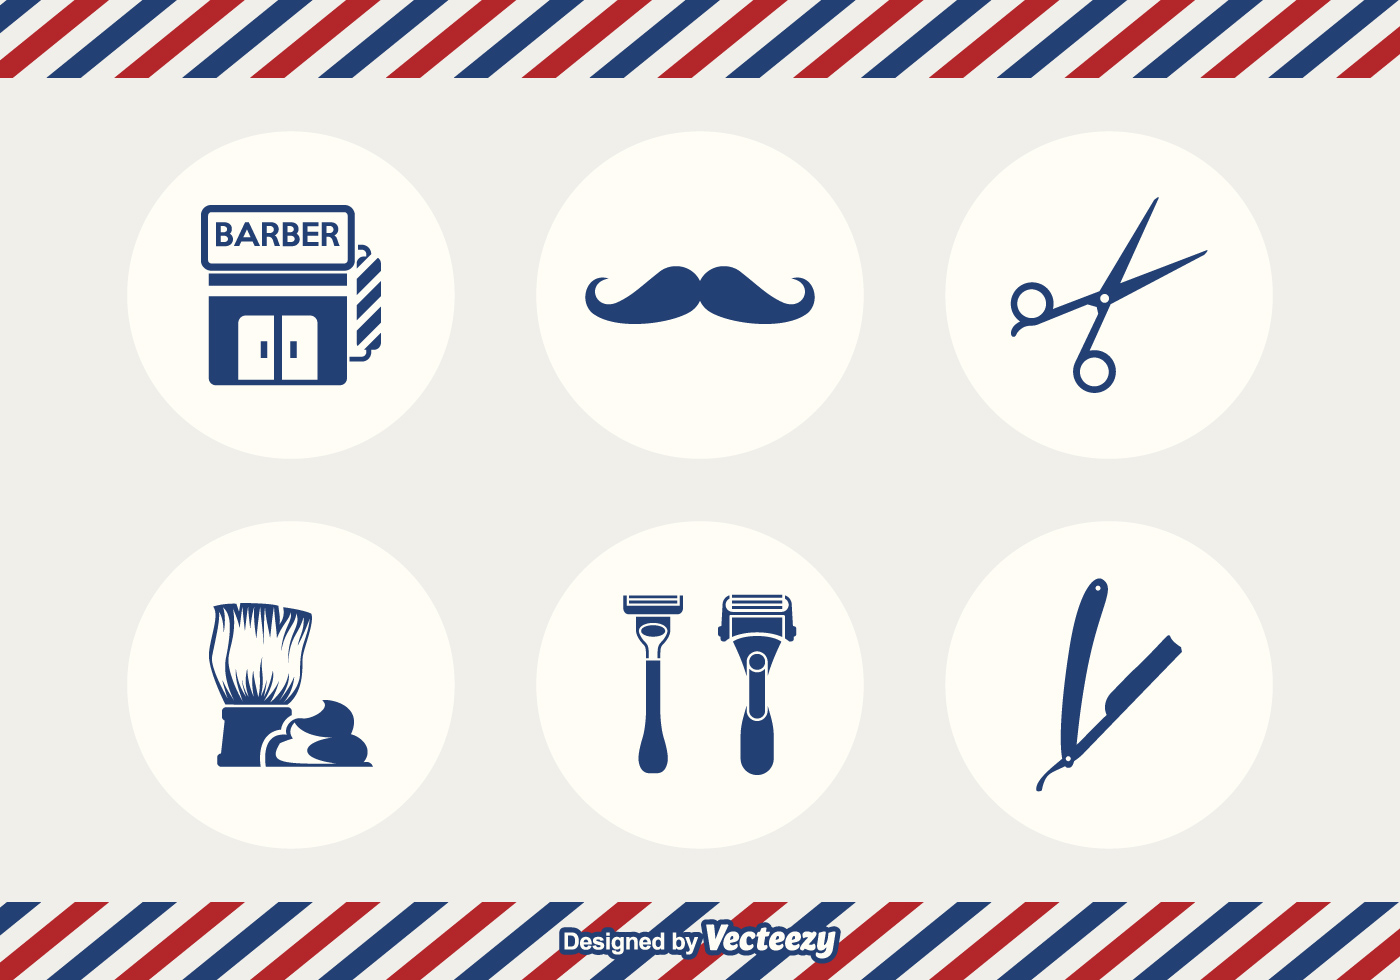 Barber Vector : Free Barber Tools Vector - Download Free Vector Art, Stock Graphics ...